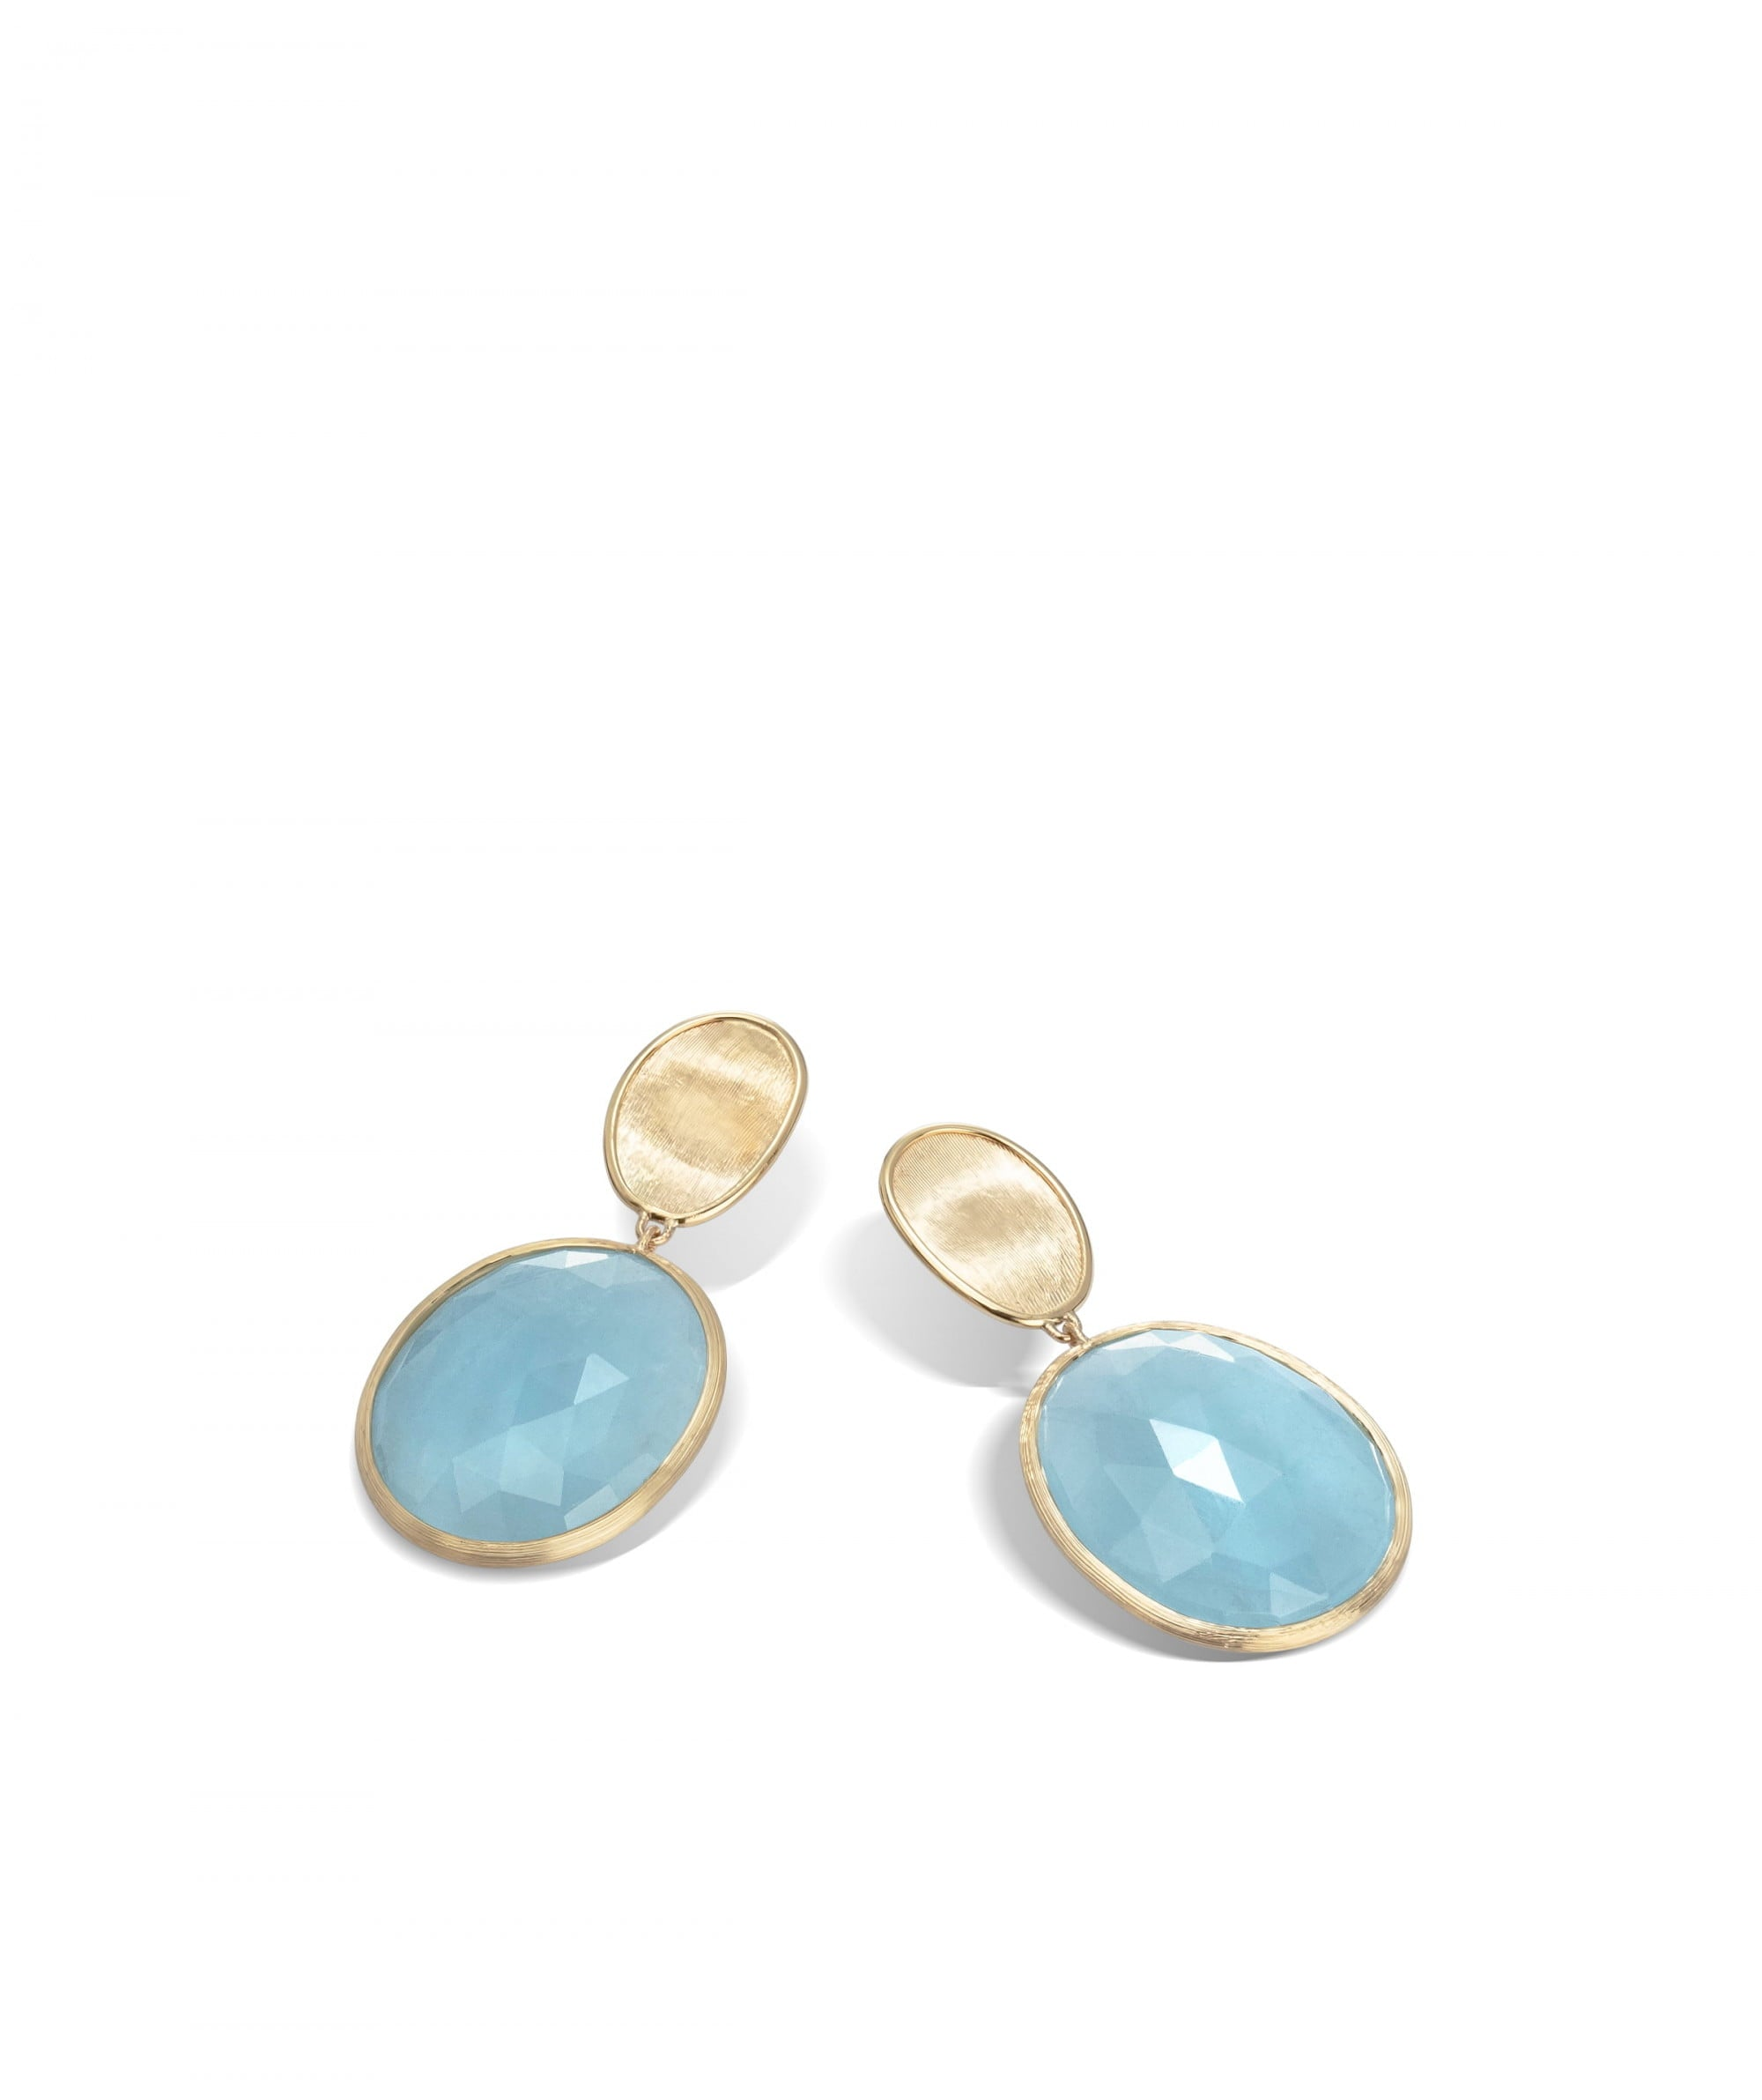 Lunaria Earrings in 18k Yellow Gold with Aquamarine Double Drop - Orsini Jewellers NZ